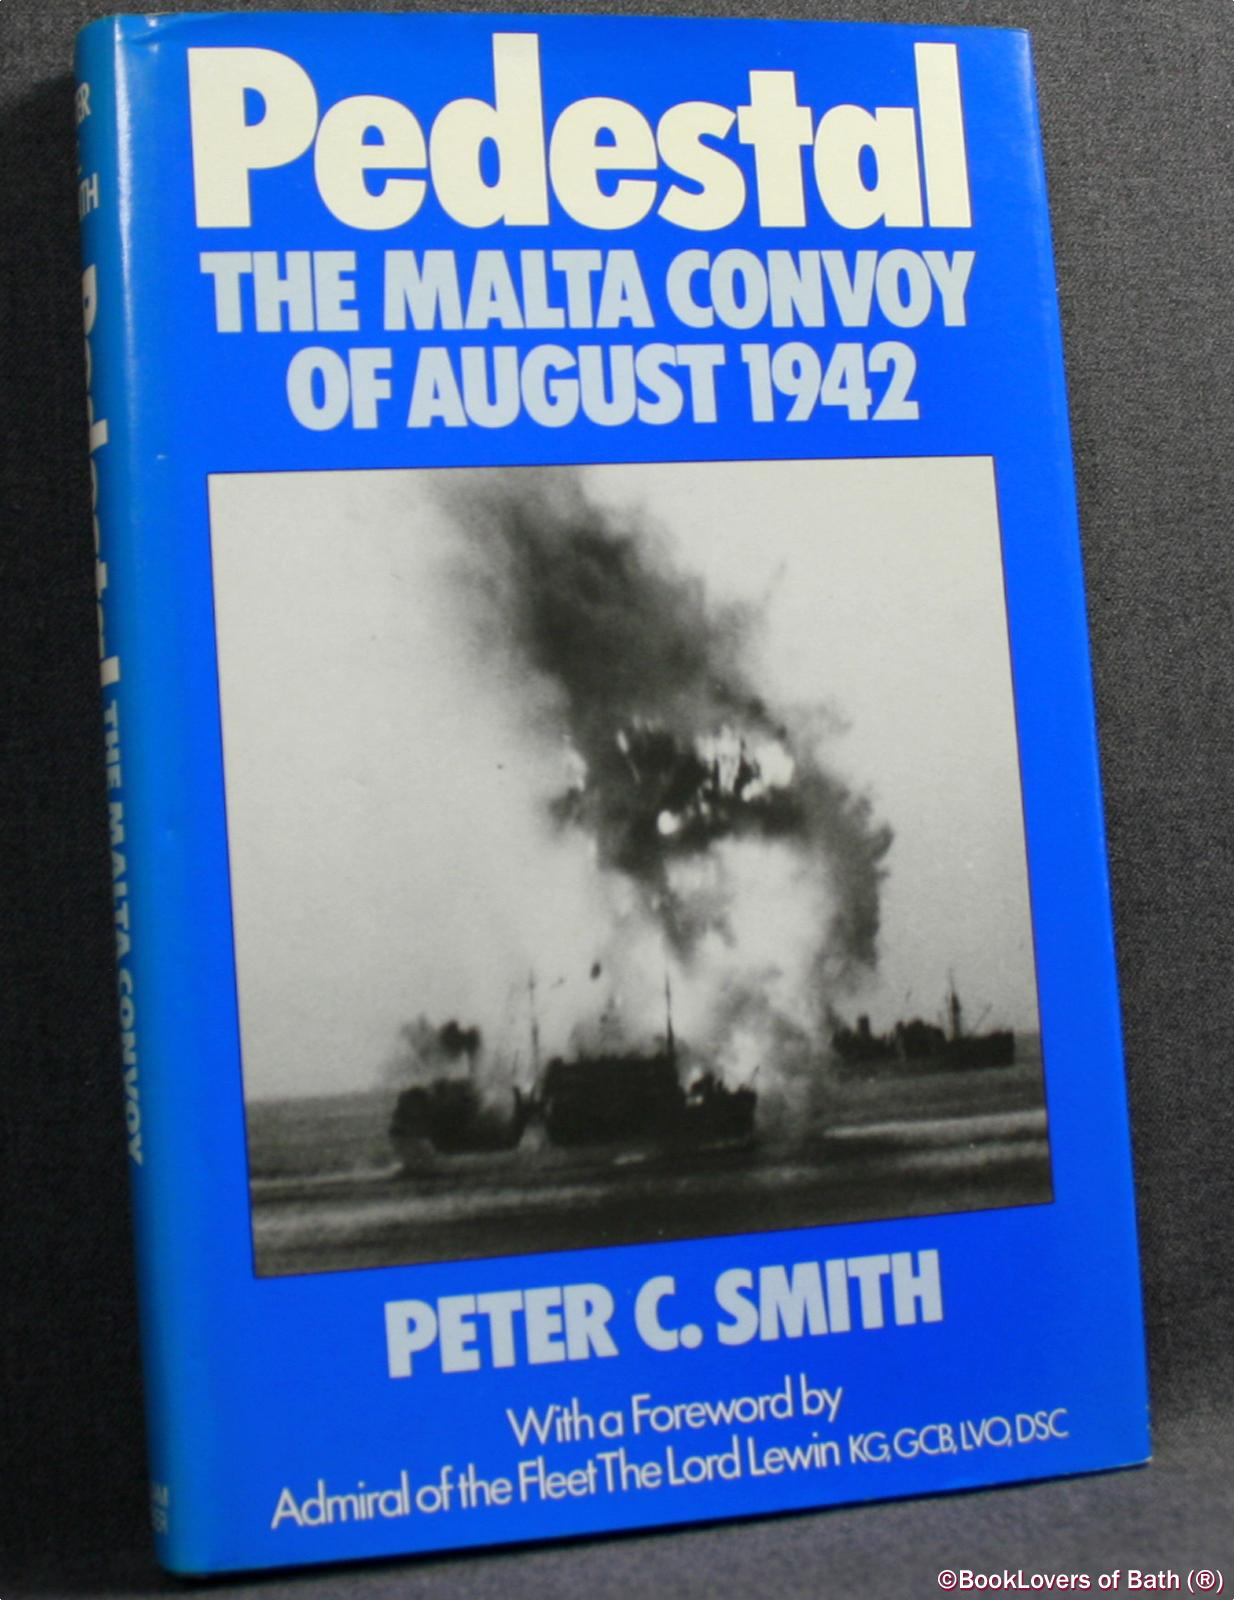 Pedestal: The Malta Convoy of August 1942 - Peter C. Smith